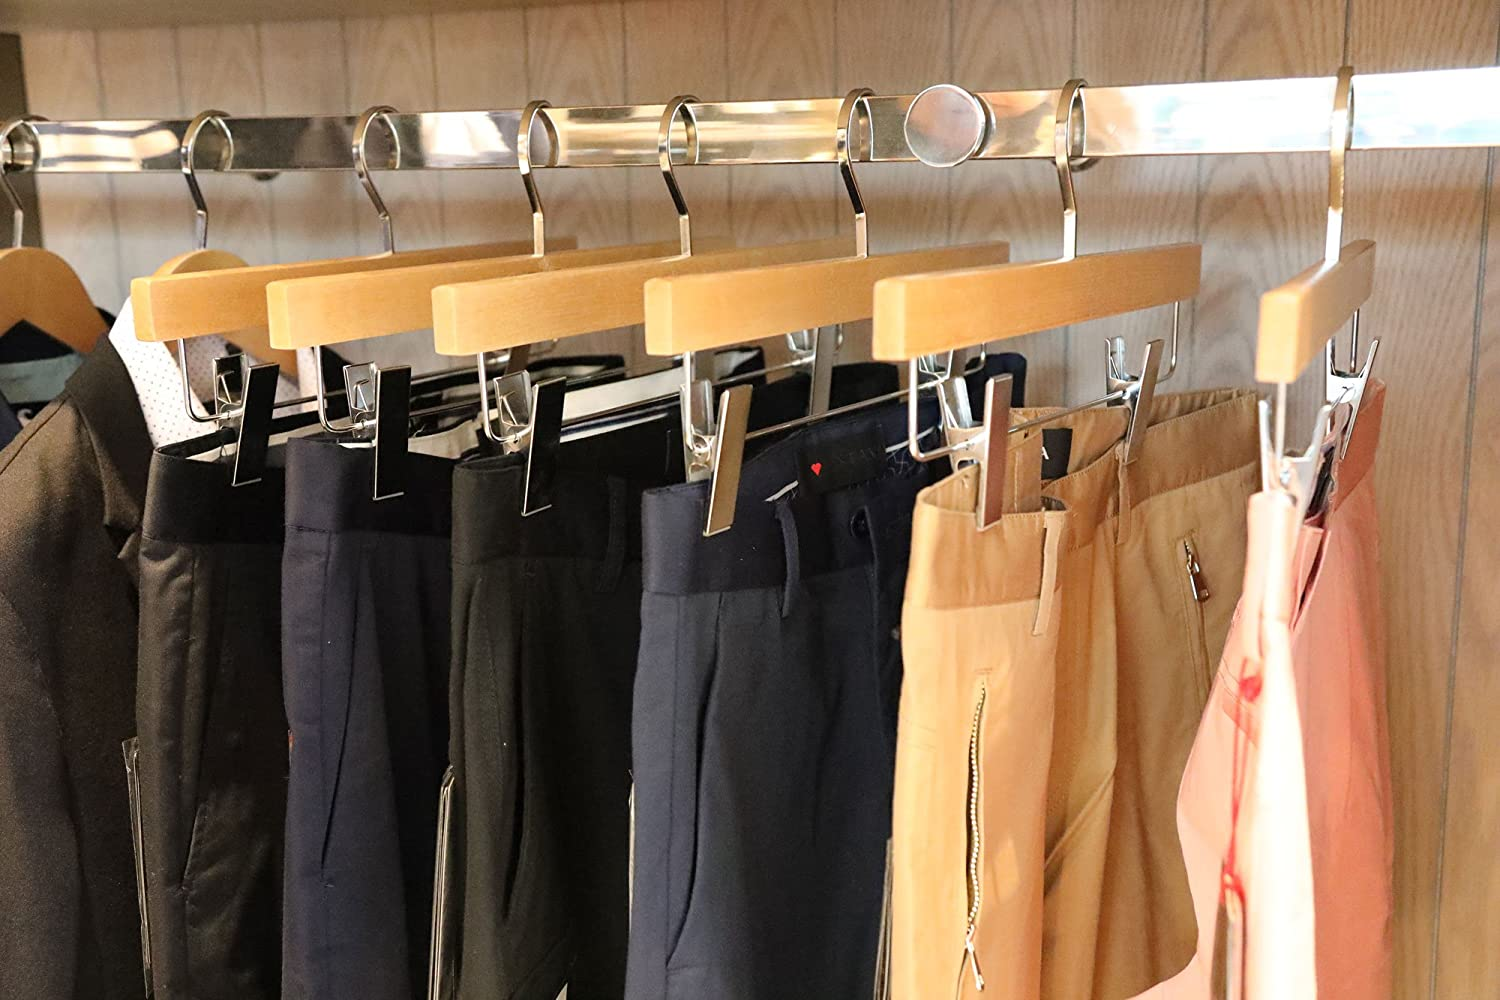 Luxury Wood Skirt Hangers TOPIA HANGER 20-Pack Cherry Wooden Pants Hangers Glossy Finish with Extra Thick Chrome Hooks /& Anti-Wrinkle Clips CT03M Craftopia INC.